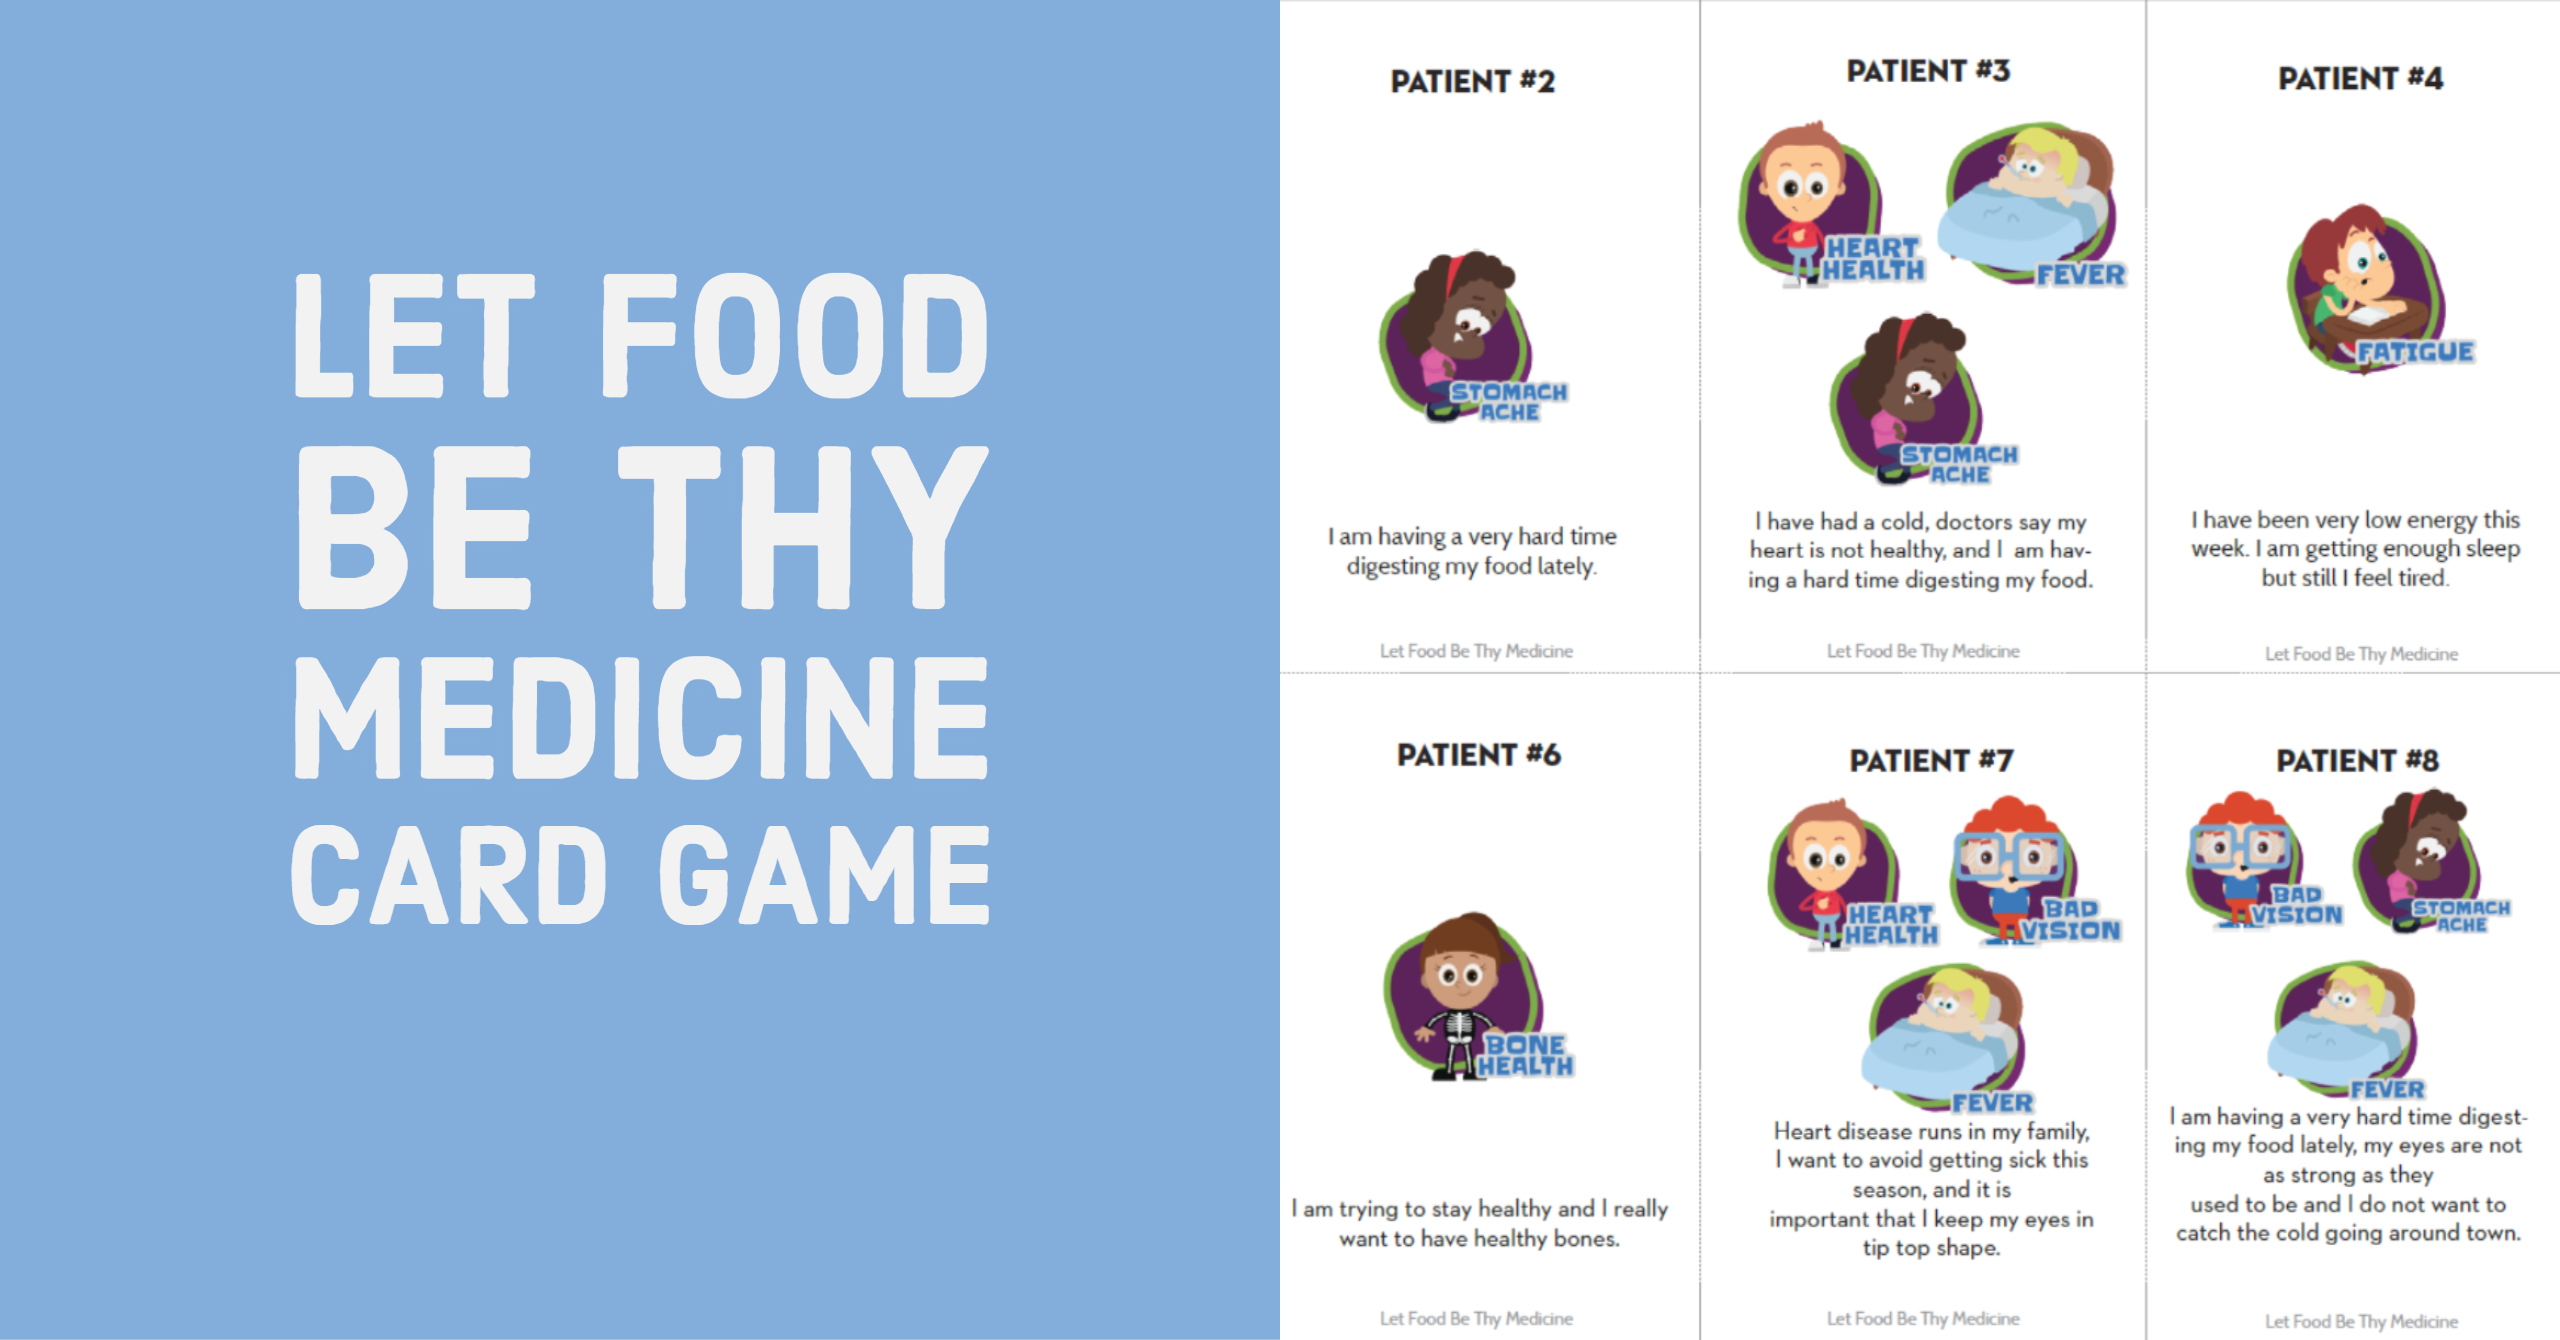 Materials: Let Food Be Thy Medicine Game